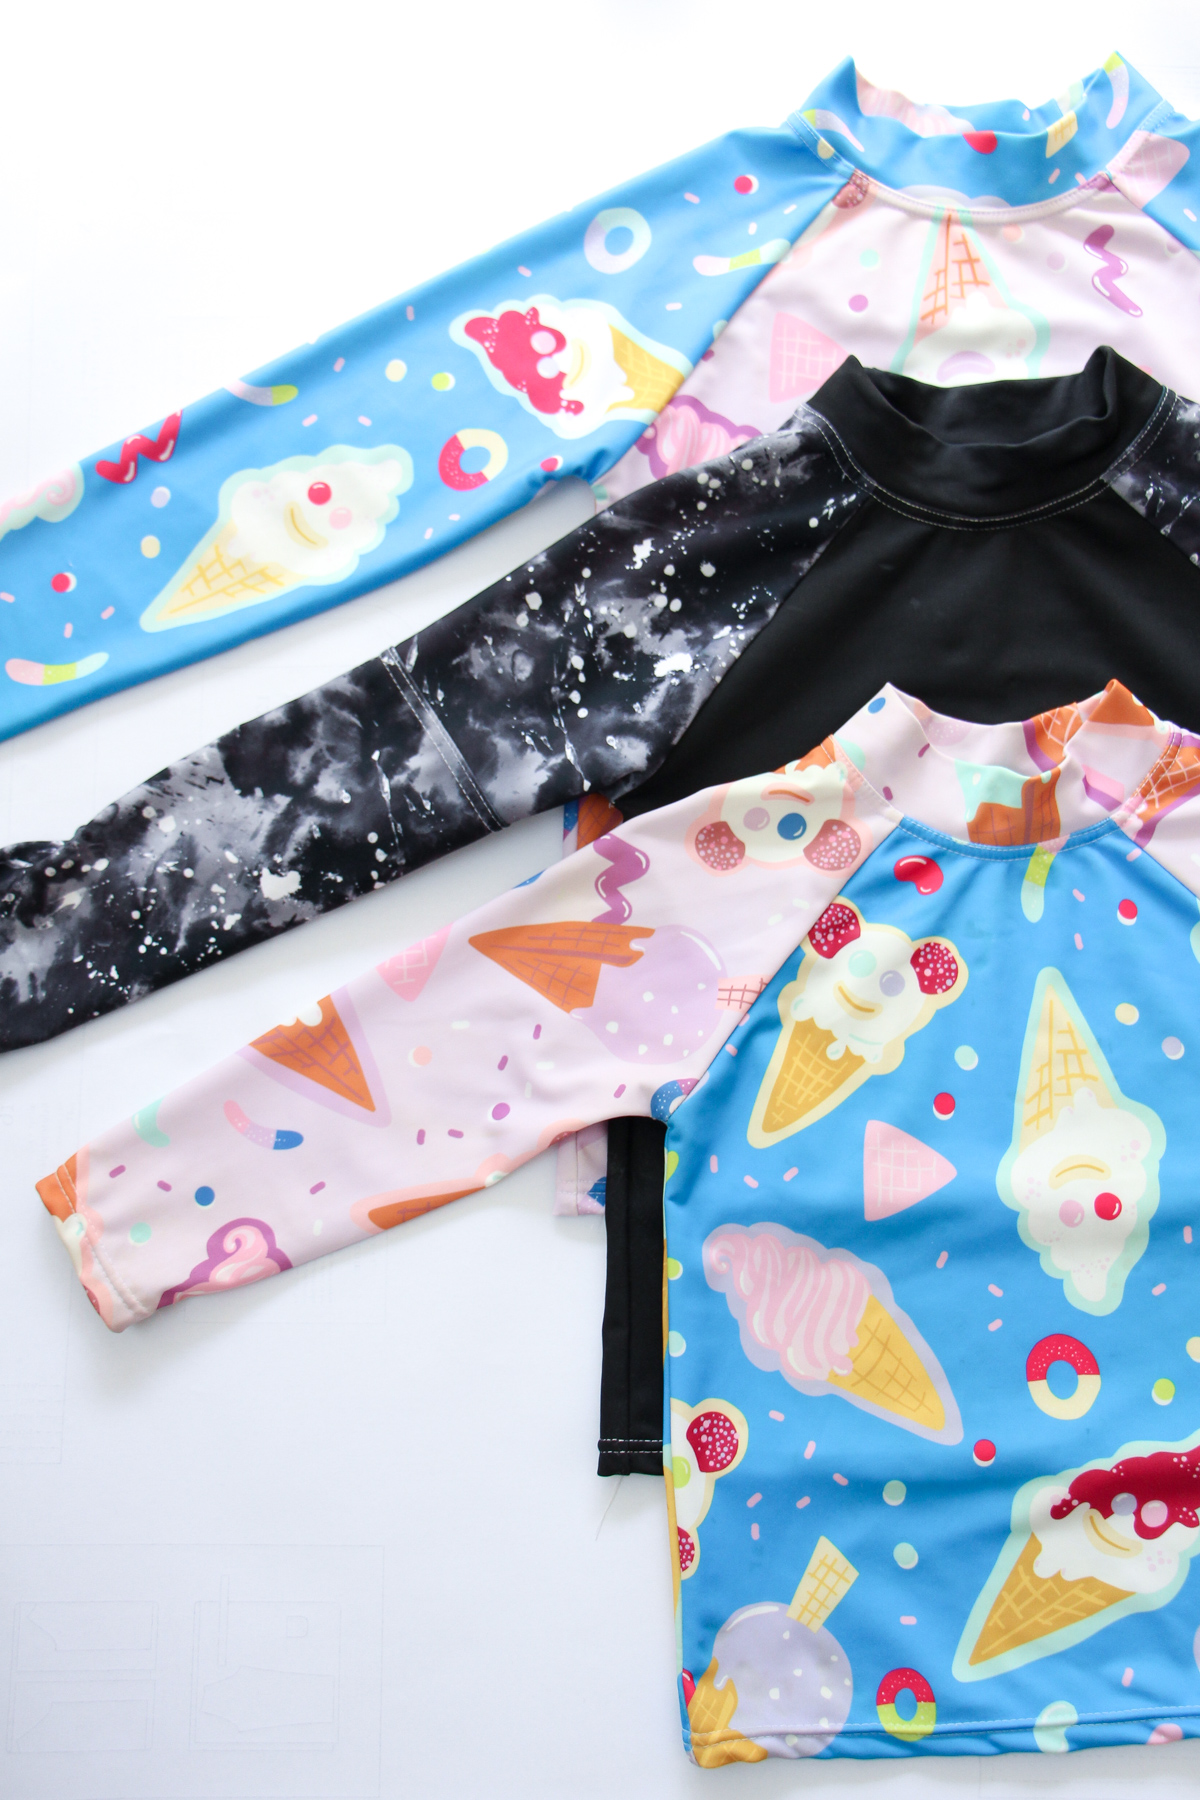 b18359da01 Boo Designs Rashie's made using Ellie Whittaker Creamy Ice Dreamy swim  lycra // Megan Nielsen ...